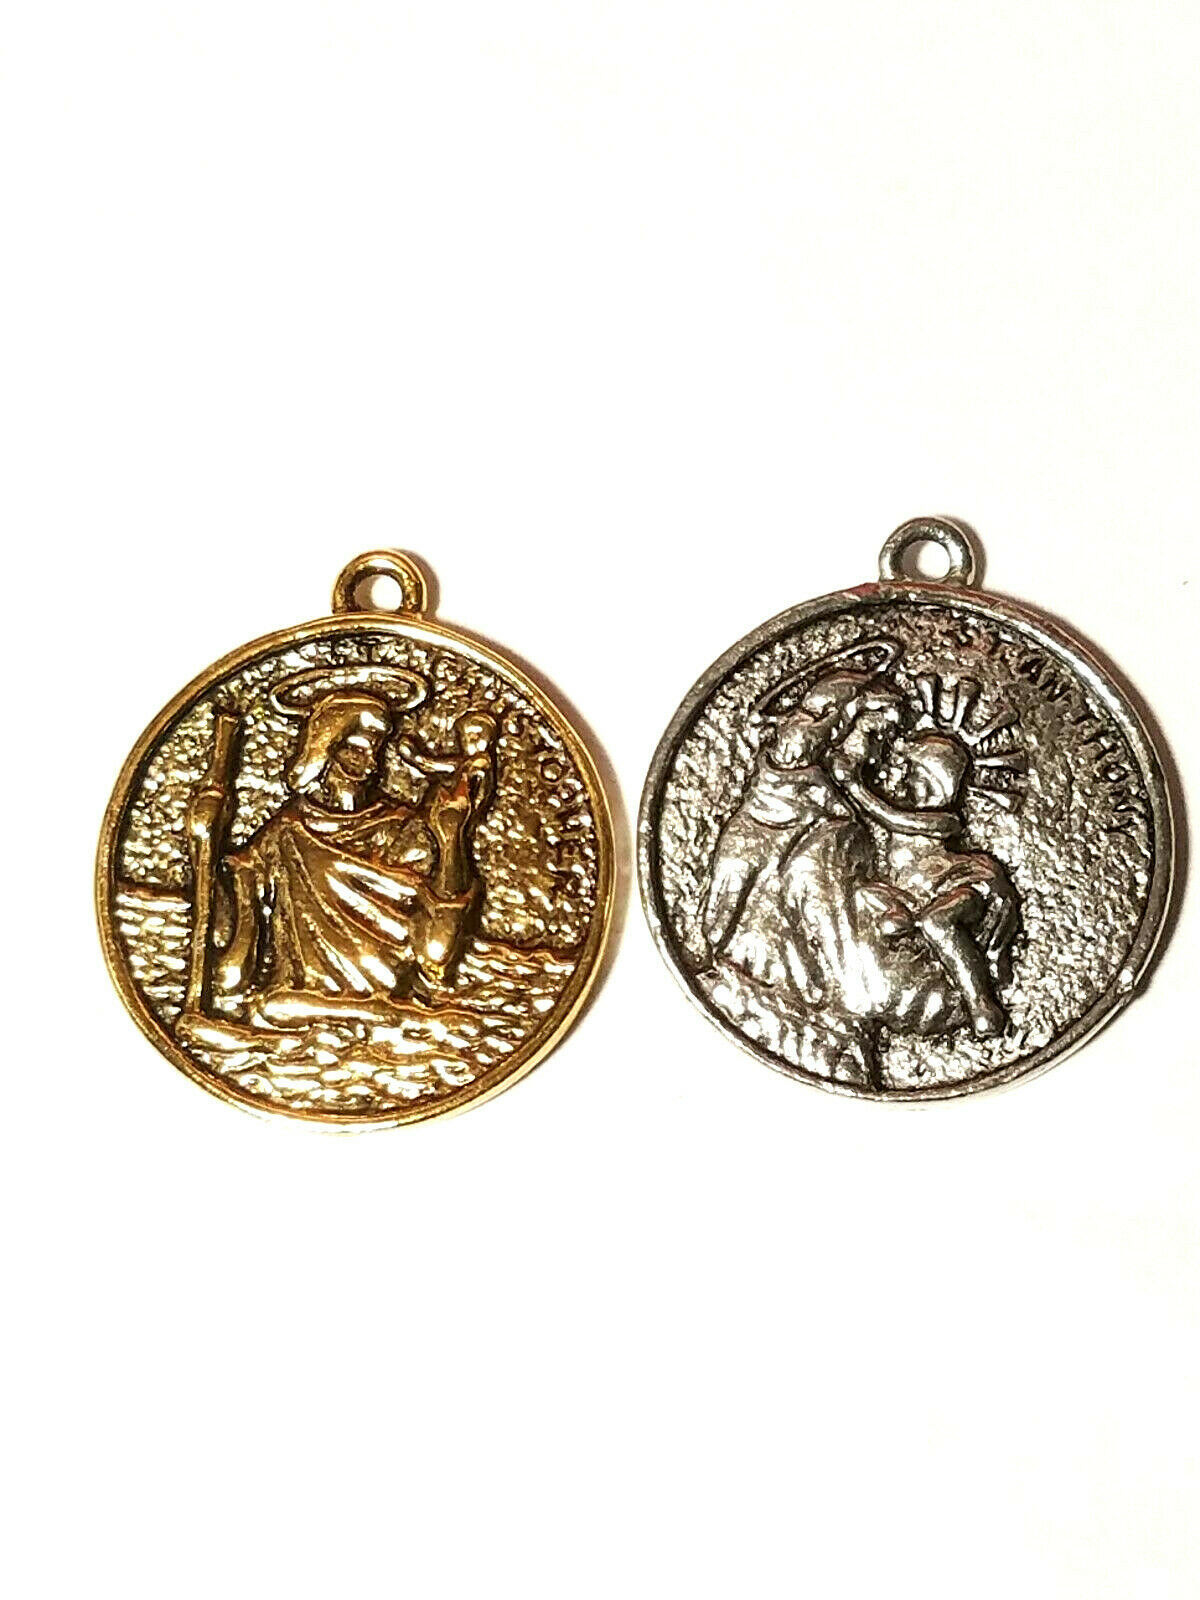 SAINT ANTHONY AND SAINT CHRISTOPHER PEWTER PENDANT CHARM